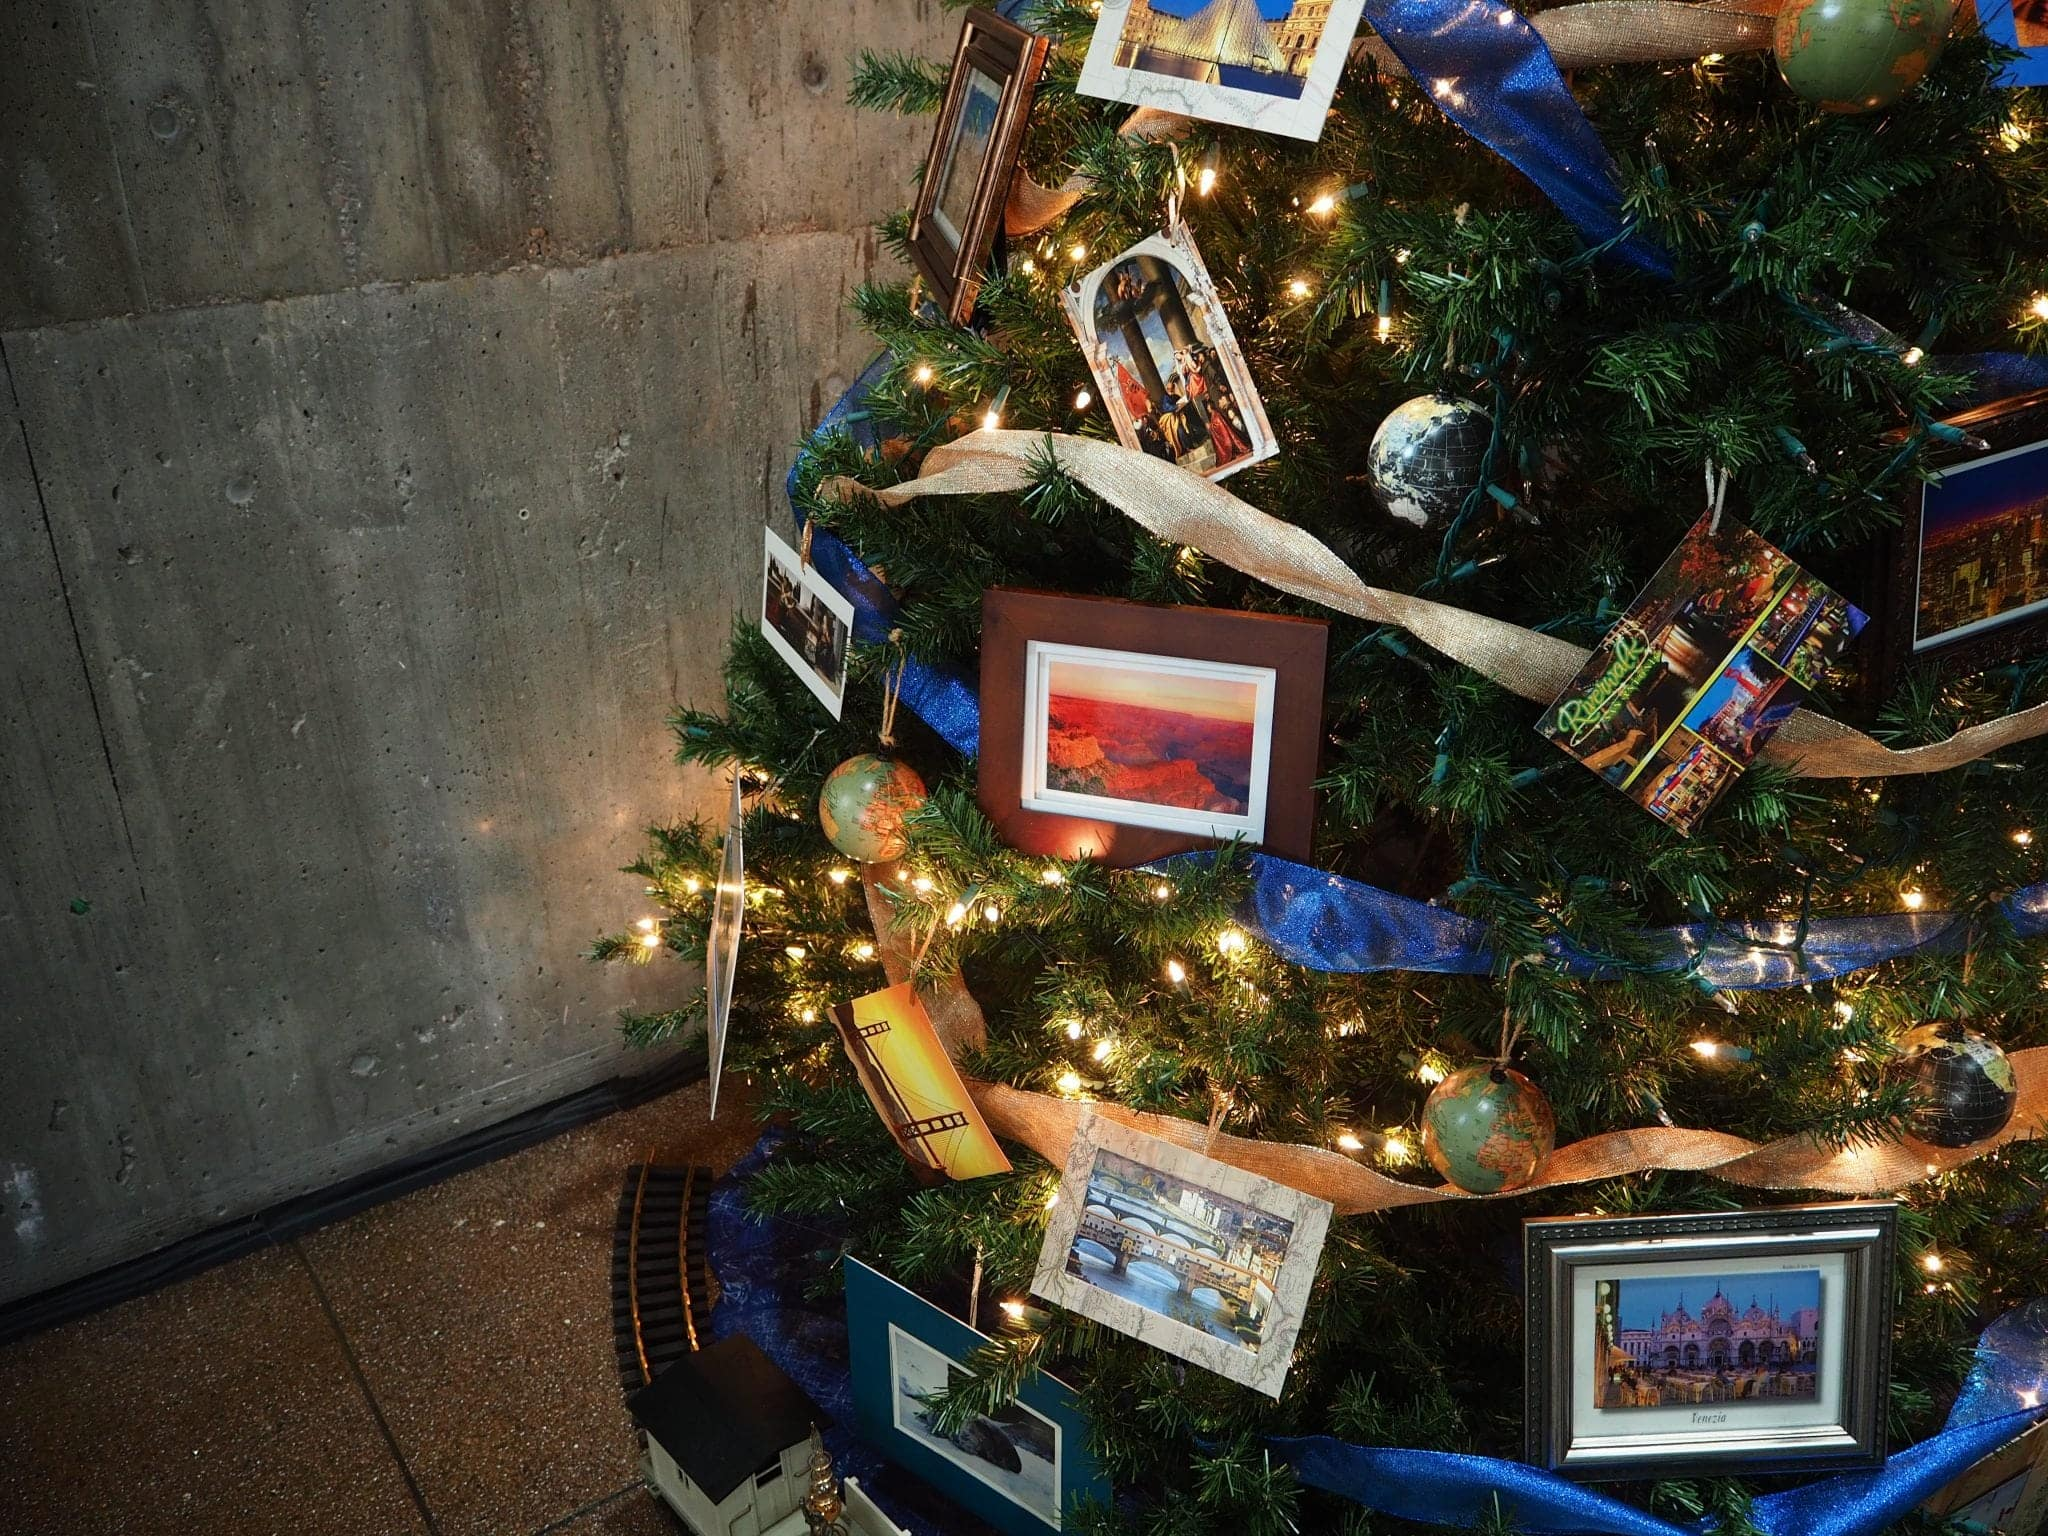 Cards on a tree